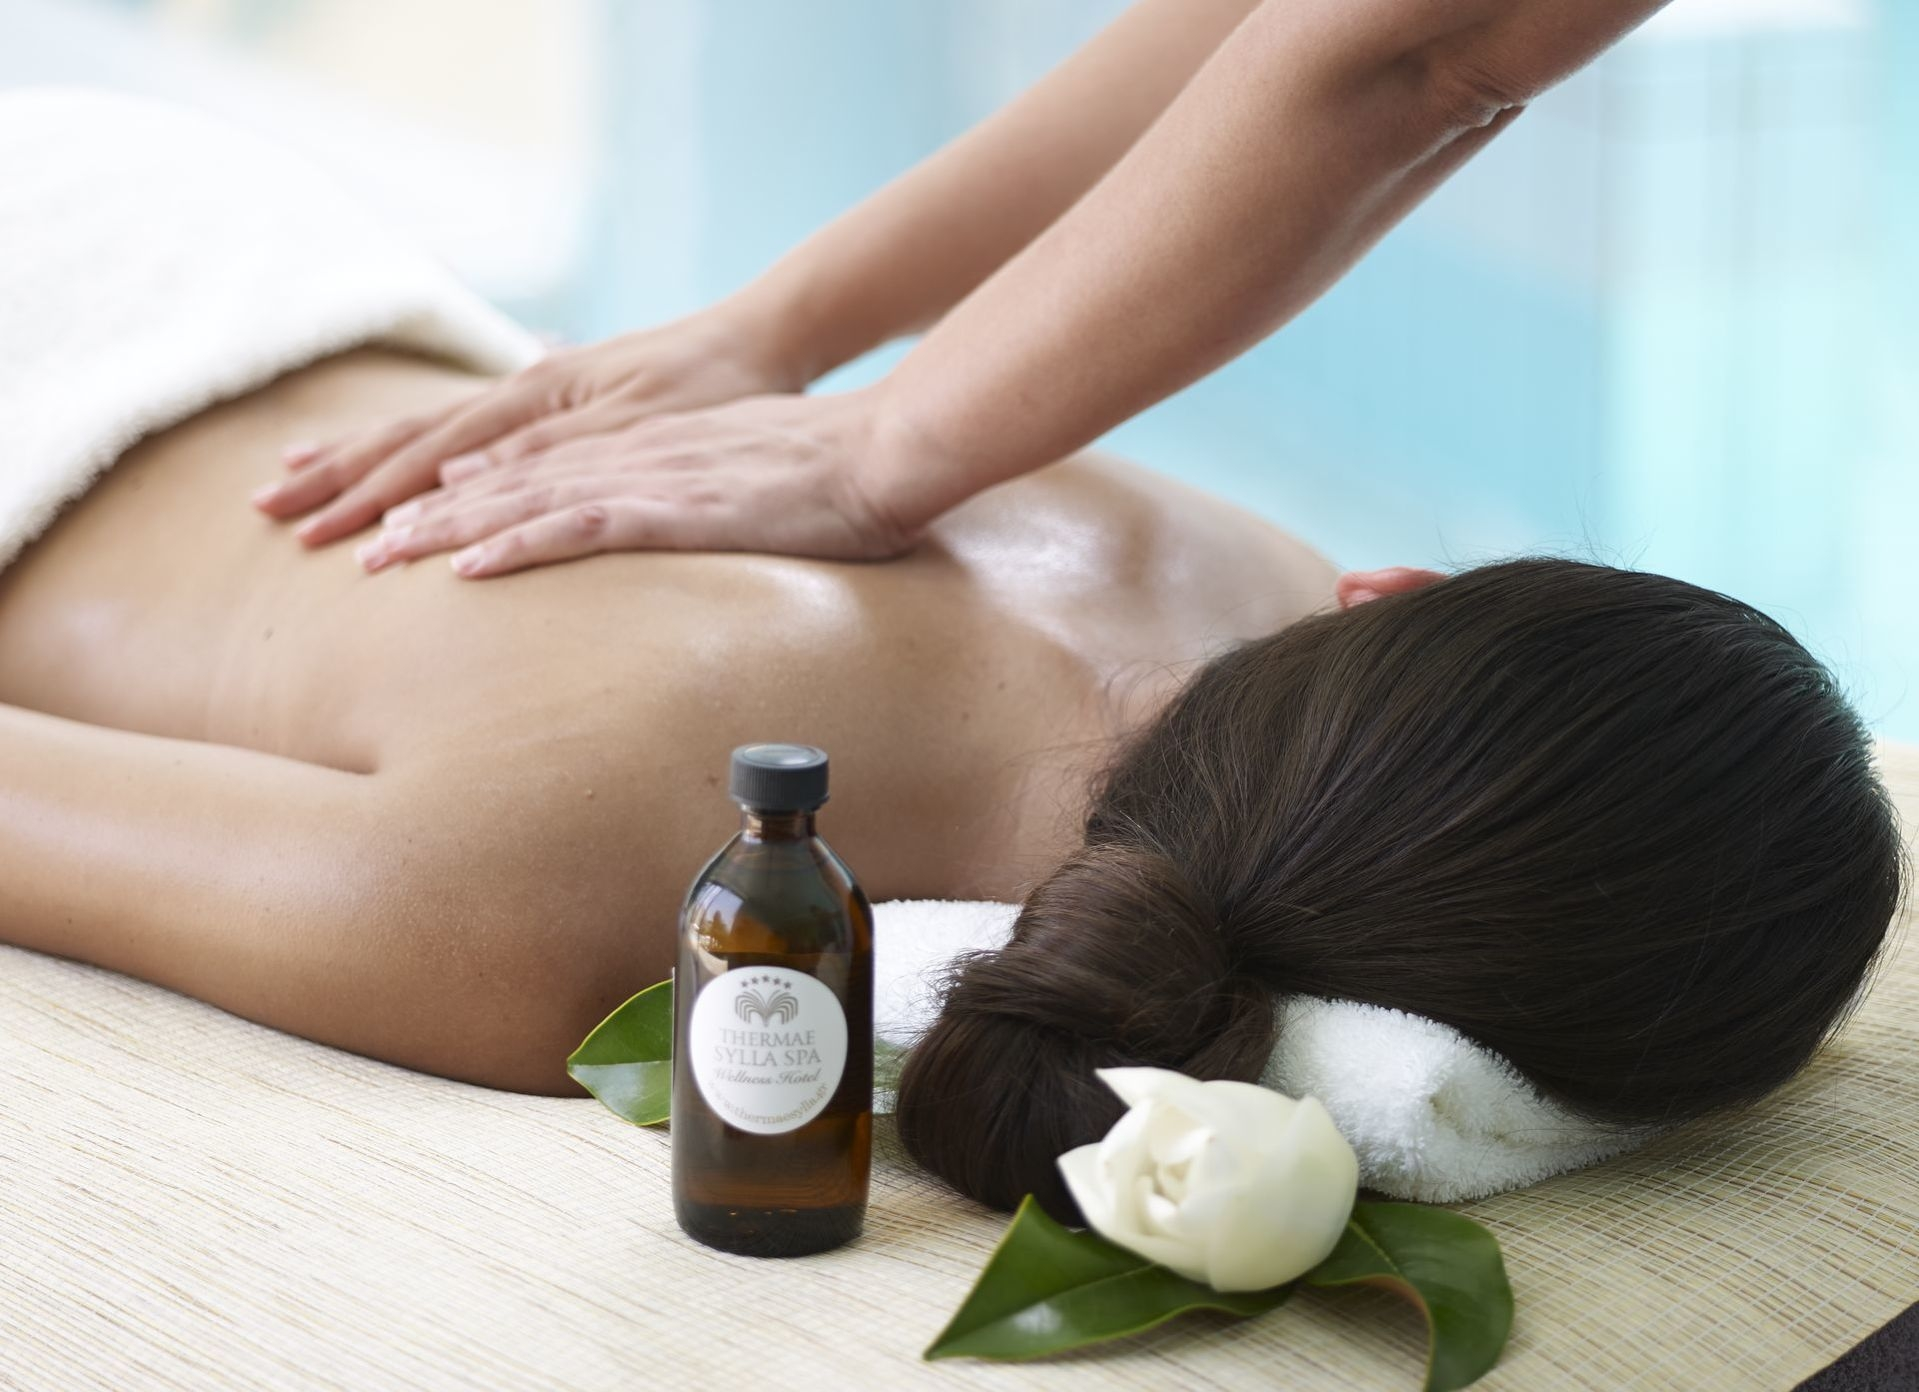 Spa Products -Thermae Sylla Wellness Hotel.